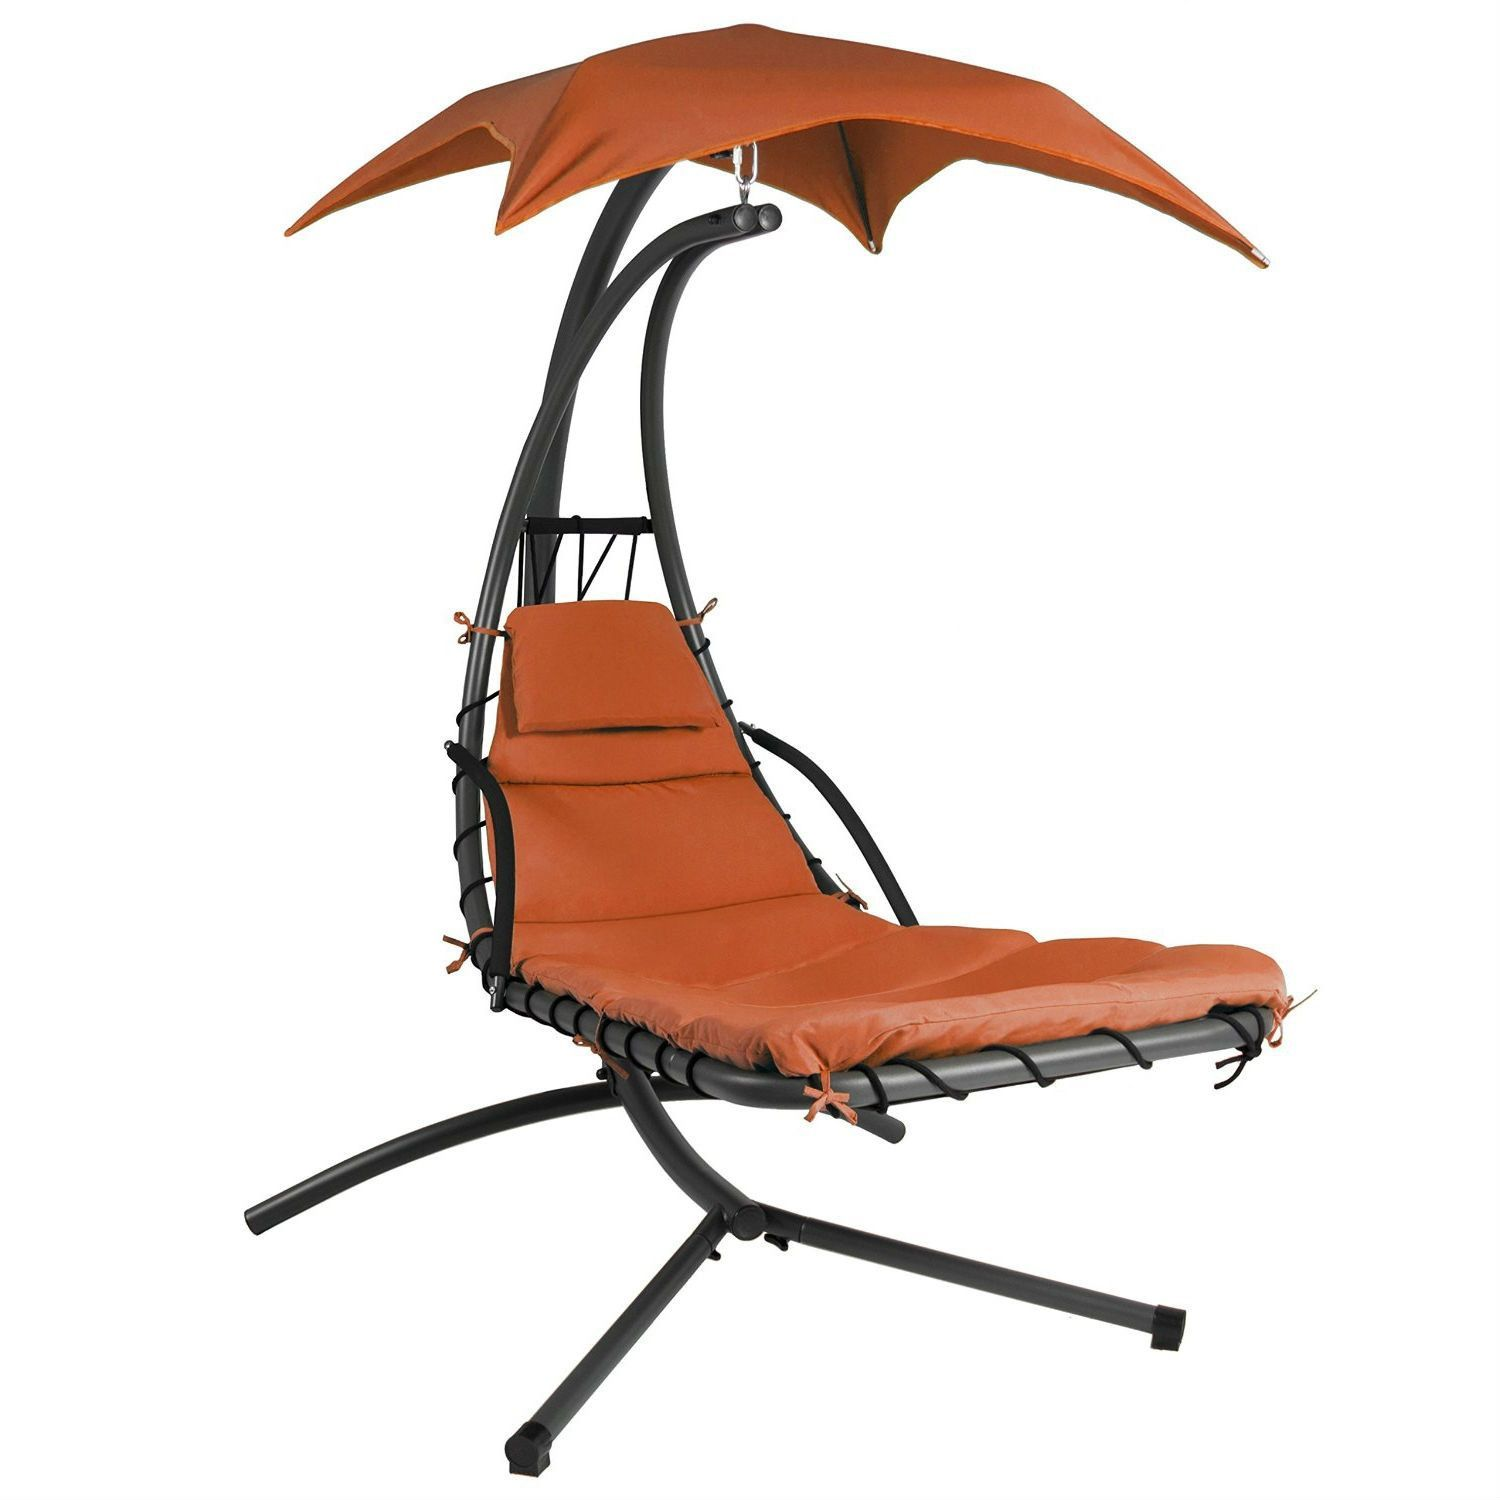 Orangered single person sturdy modern chaise lounger hammock chair